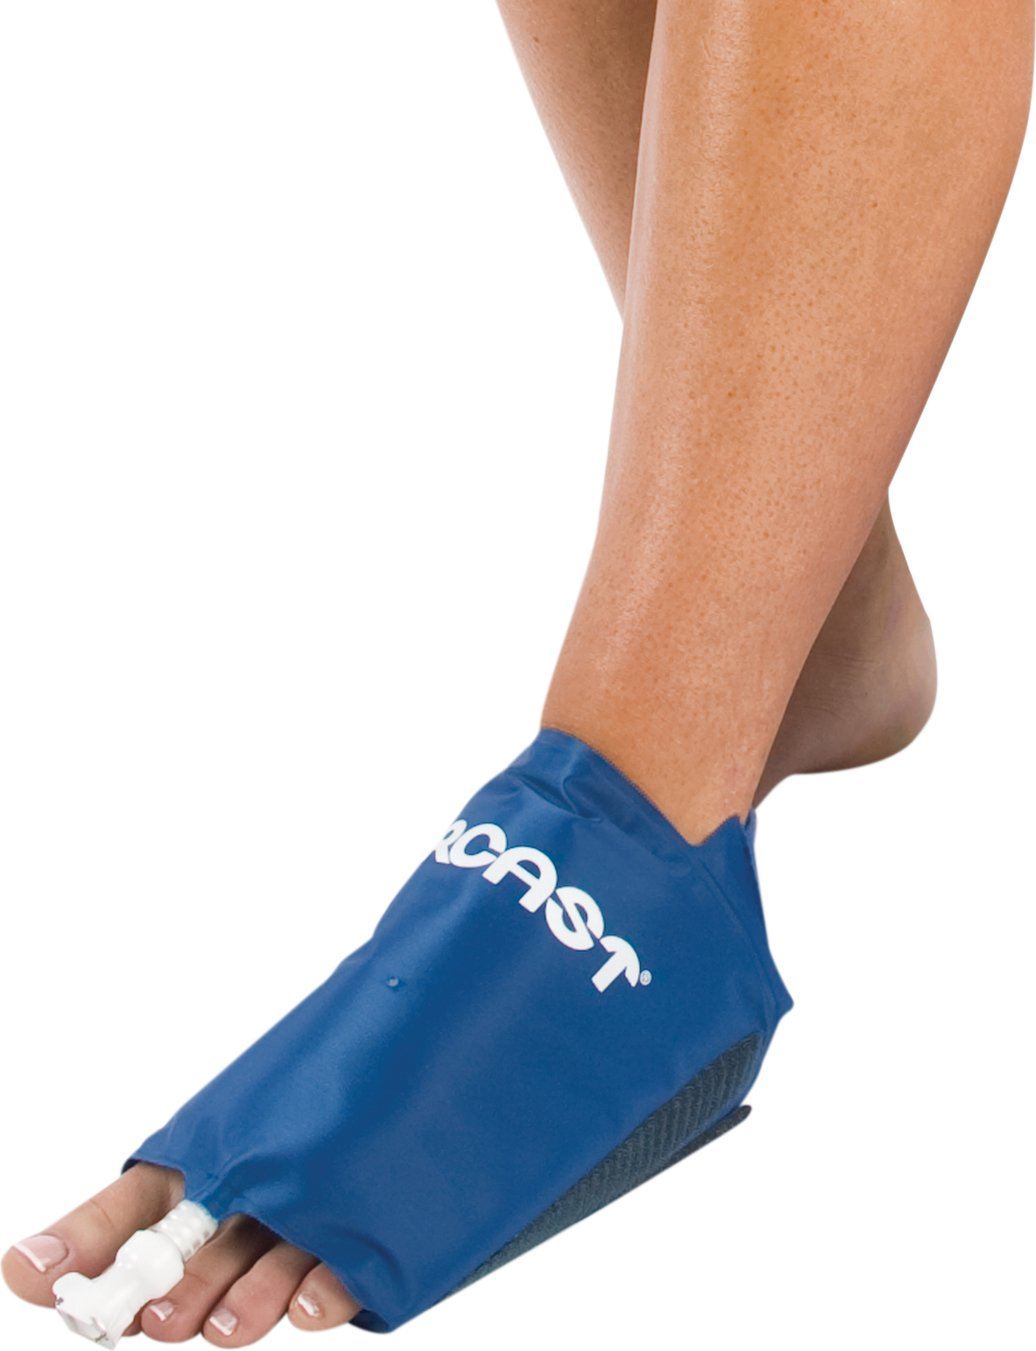 DonJoy Aircast Cryo/Cuff Cold Therapy: Foot Cryo/Cuff, Large by DonJoy